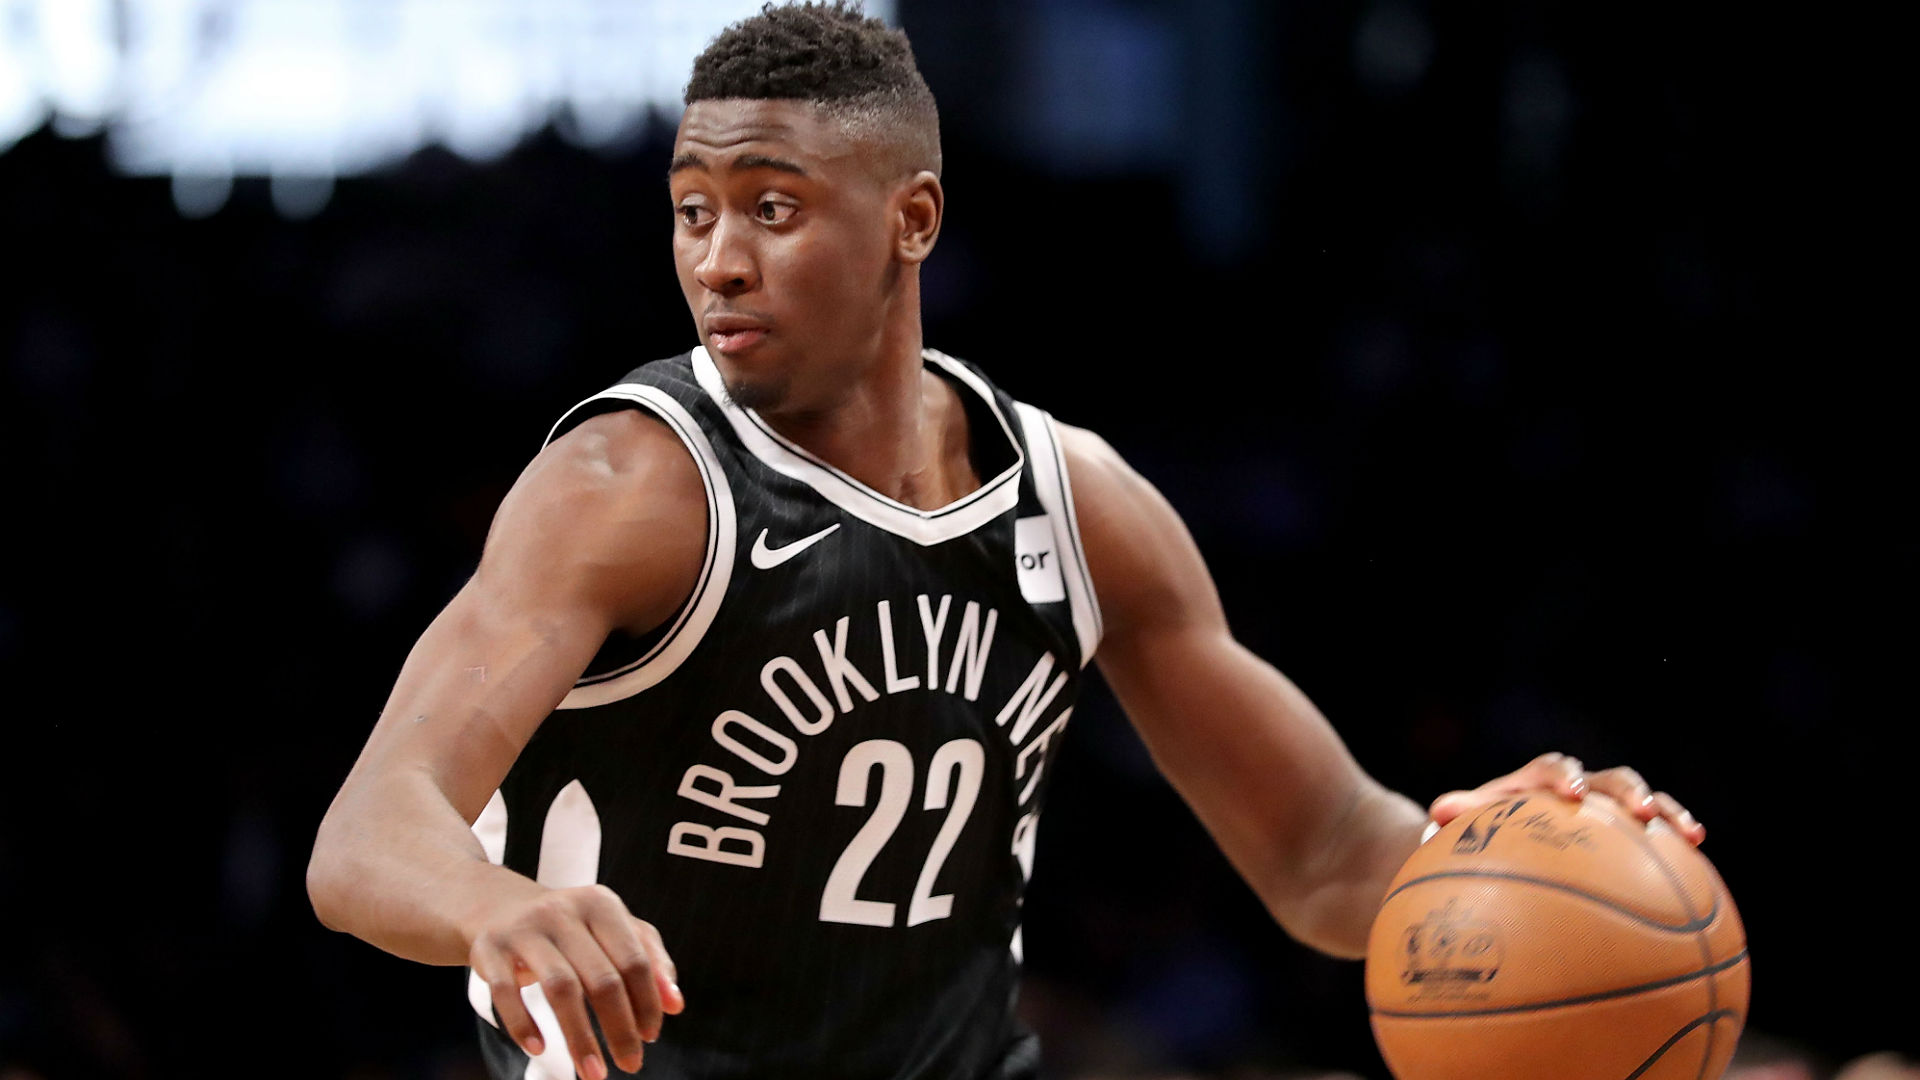 Brooklyn Nets' Caris LeVert suffers serious leg injury against Timberwolves